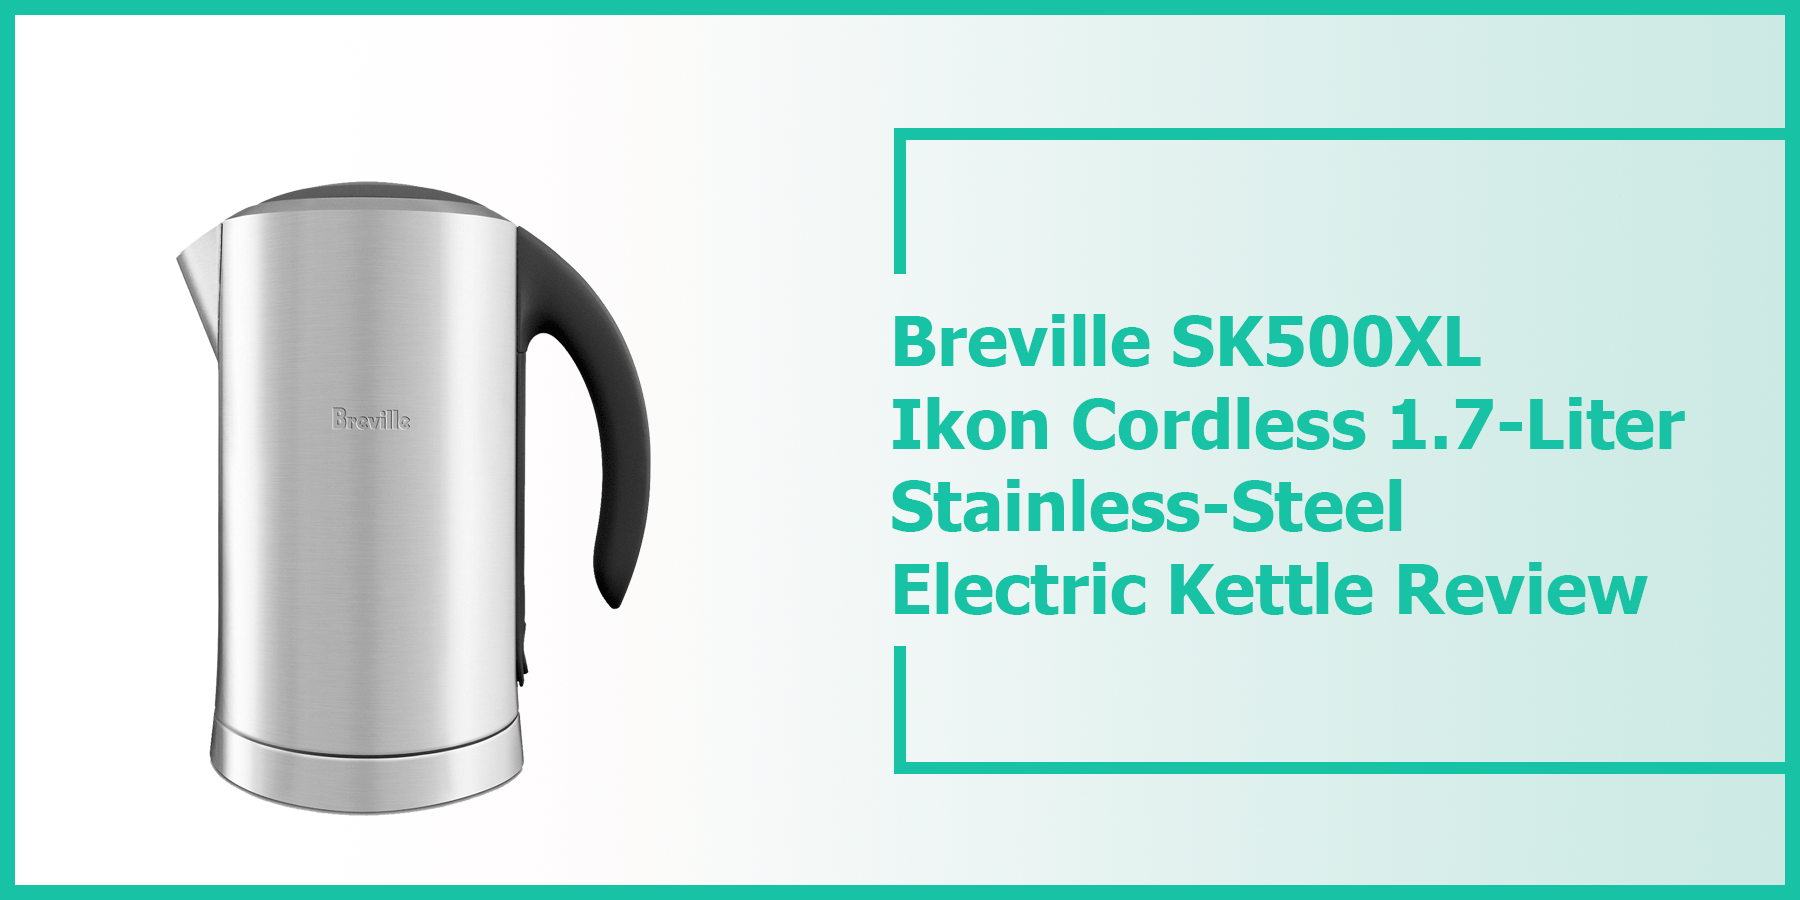 Breville SK500XL Ikon Cordless 1.7-Liter Stainless-Steel Electric Kettle  Review